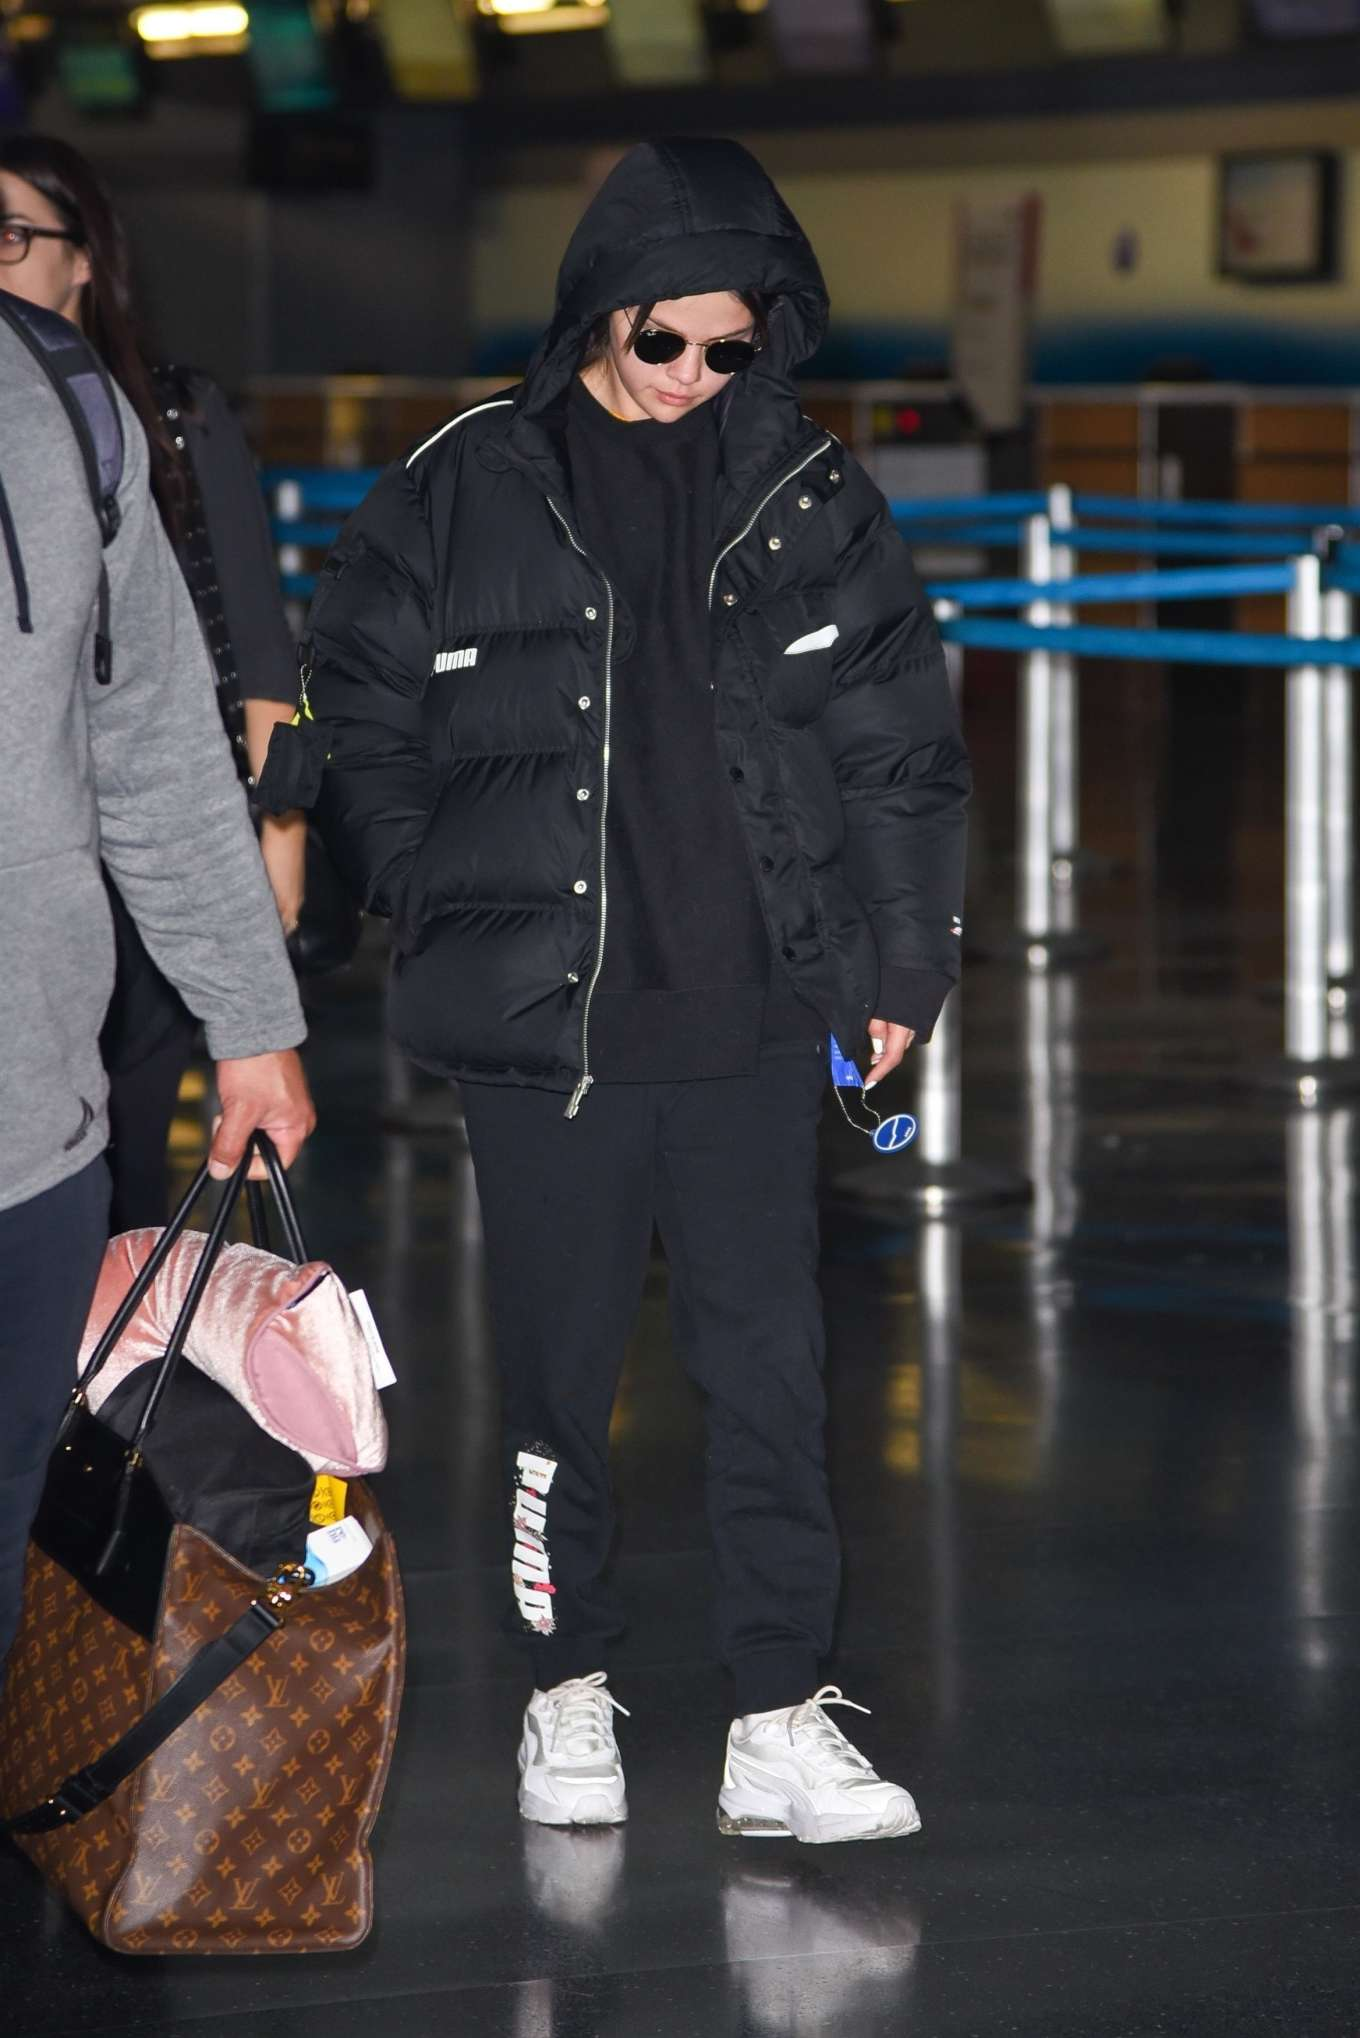 Selena Gomez, black  jacket, nylon, Puma  jacket, white Puma sneakers, black hoodie, front zip, hip length, extra long sleeves, oversized, black sunglasses, concealed button